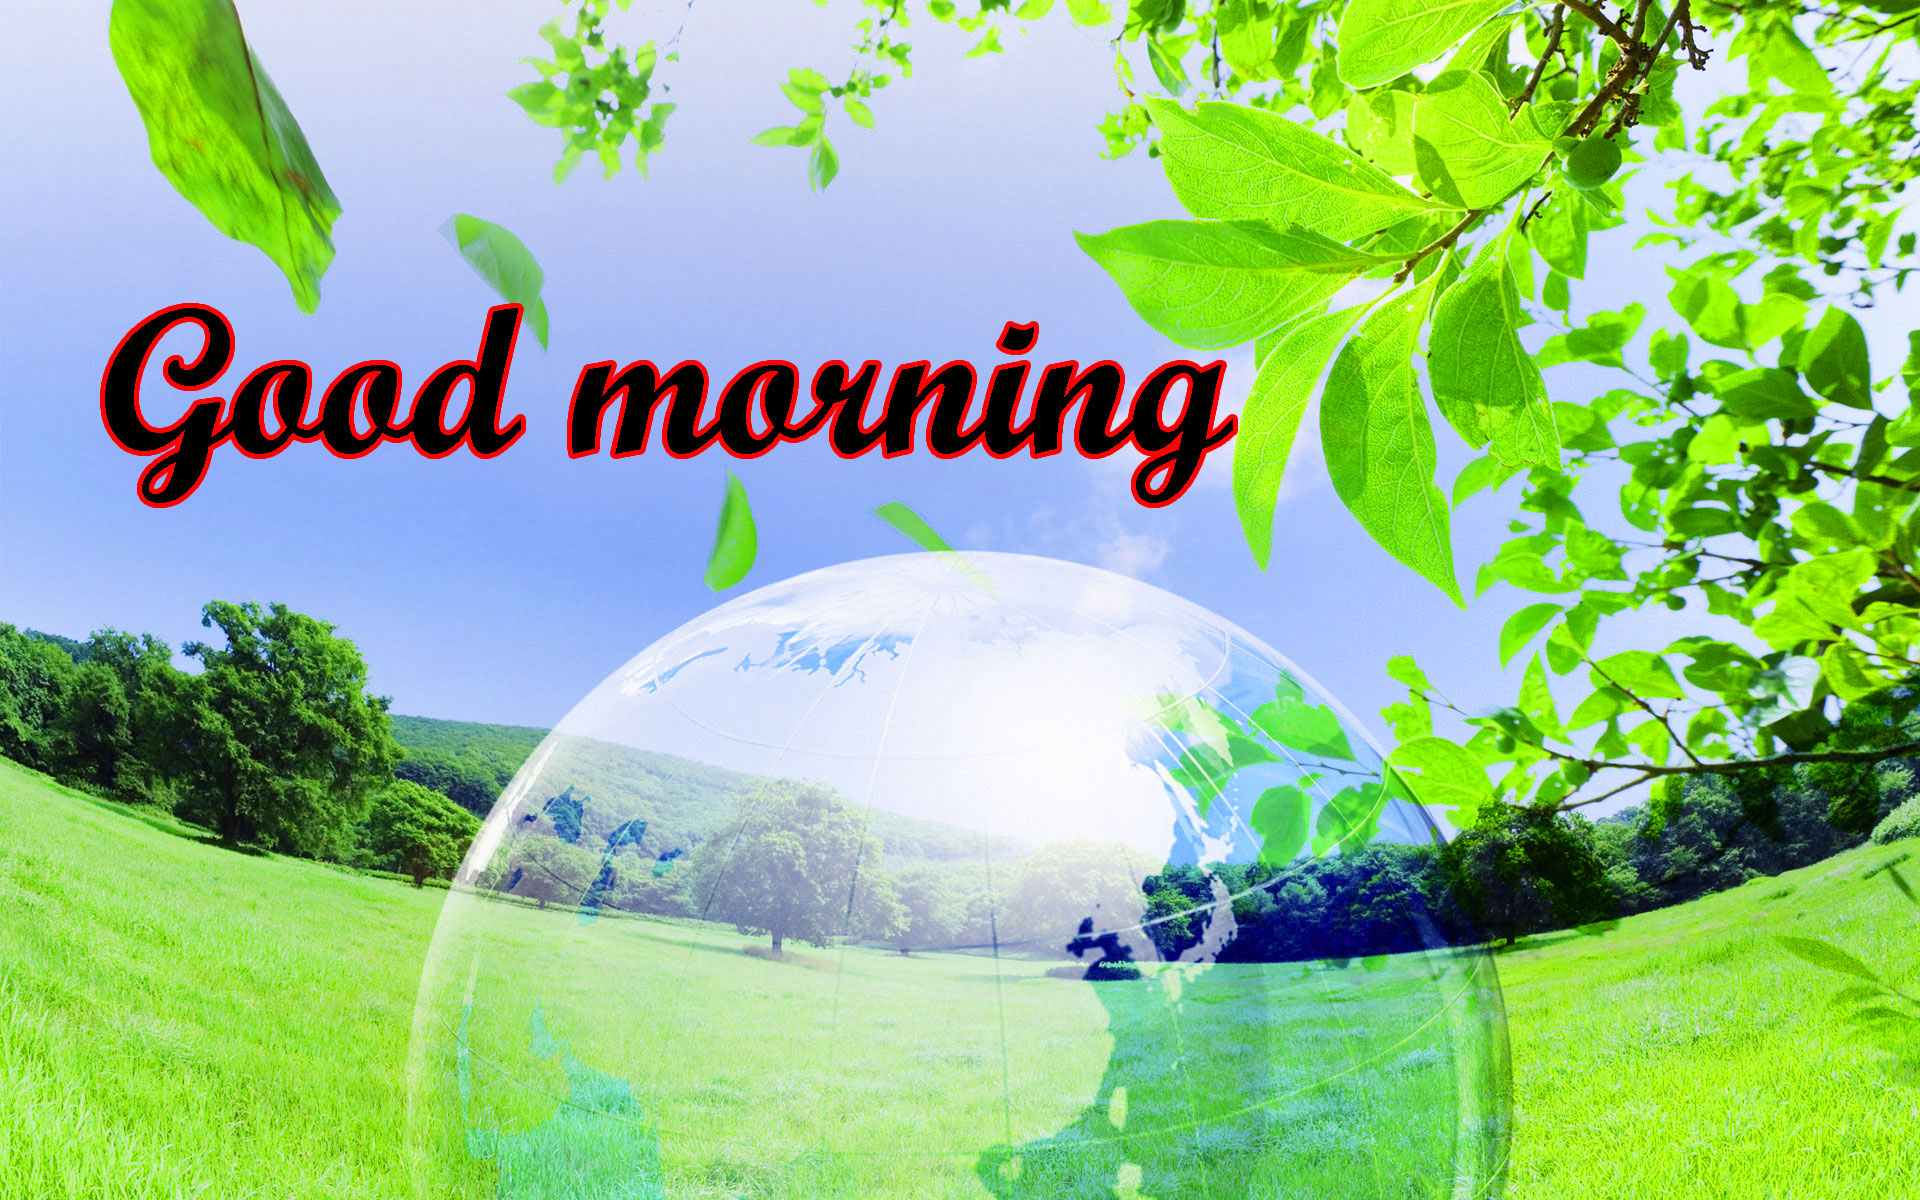 BEAUTIFUL 3D GOOD MORNING IMAGES PHOTO FOR WHATSAPP